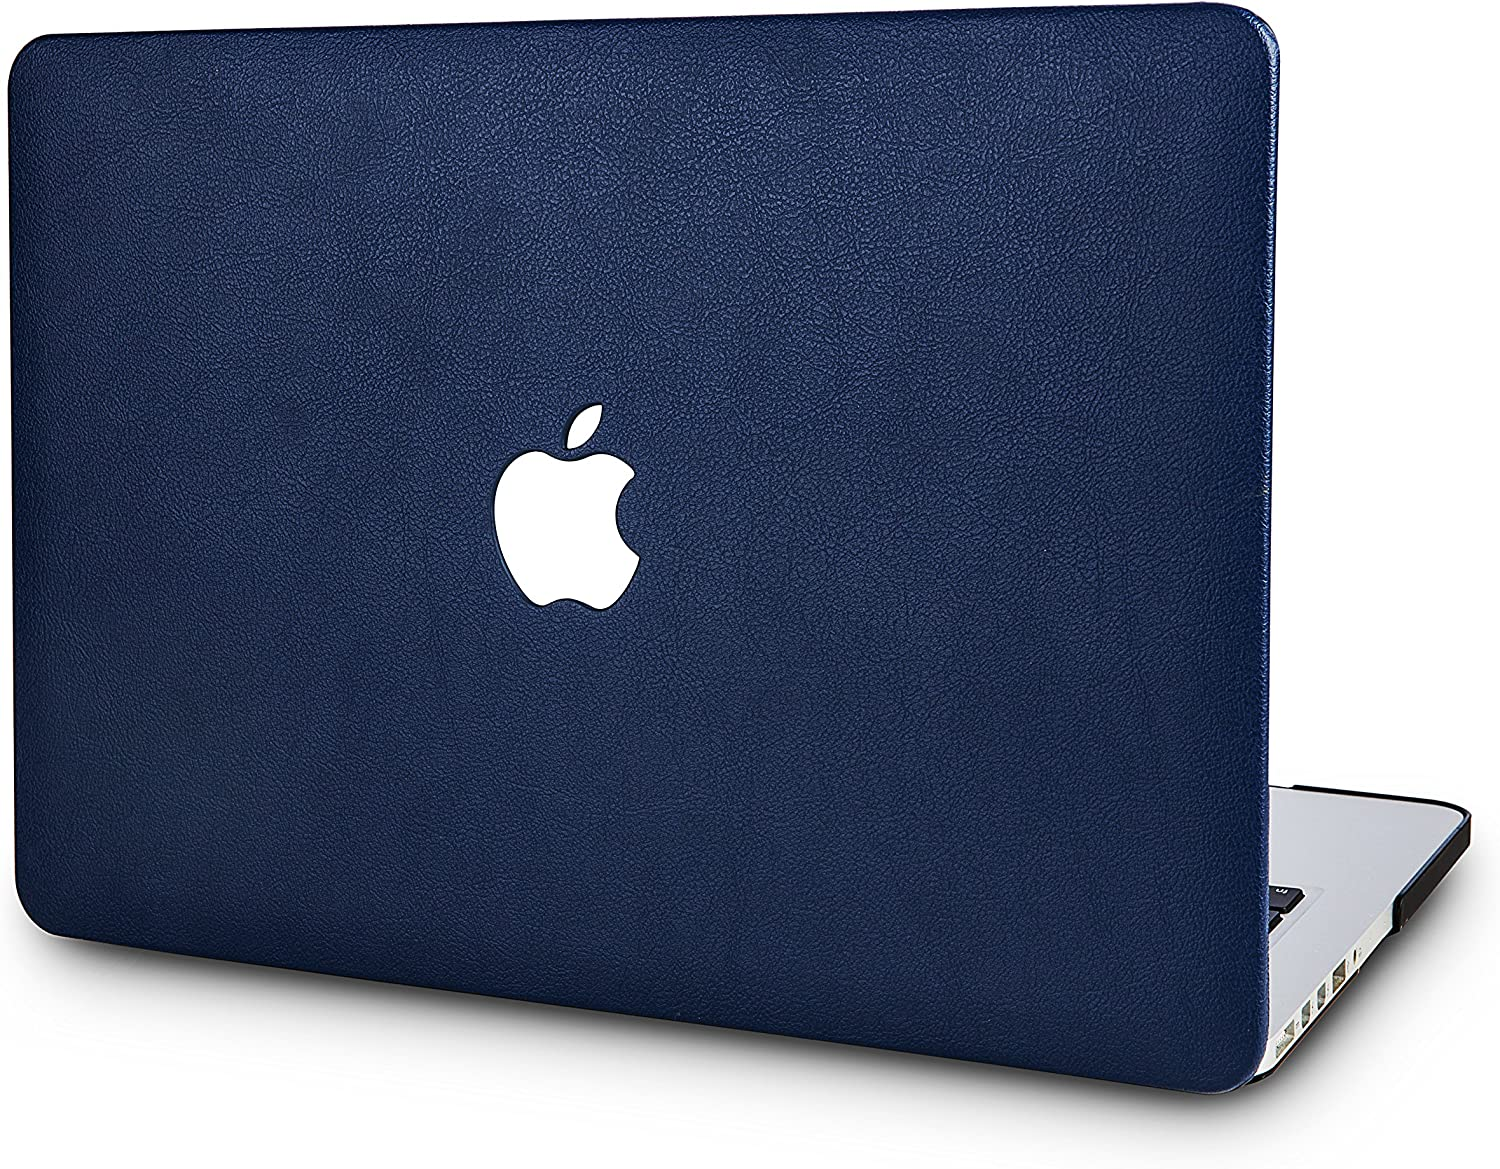 "KECC Laptop Case for Old MacBook Pro 13"" Retina (-2015) Italian Leather Hard Shell Cover A1502 / A1425 (Navy Blue Leather)"